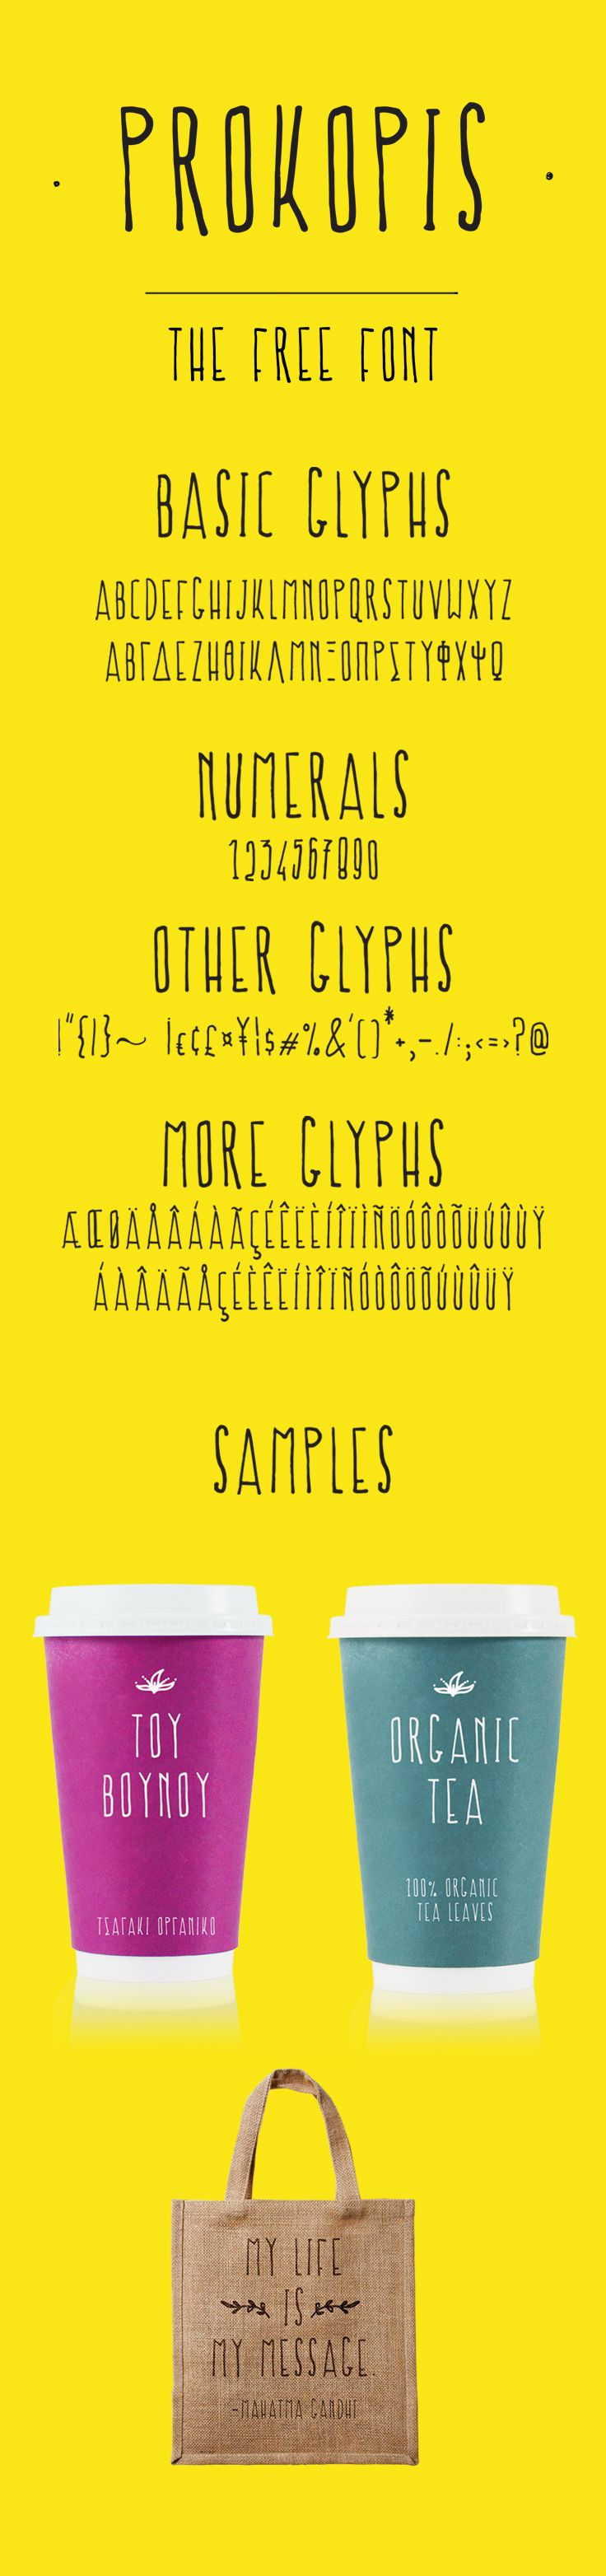 Prokopis the Free Font is ready to download!  Multilingual typeface for cute projects. Instant download for free!